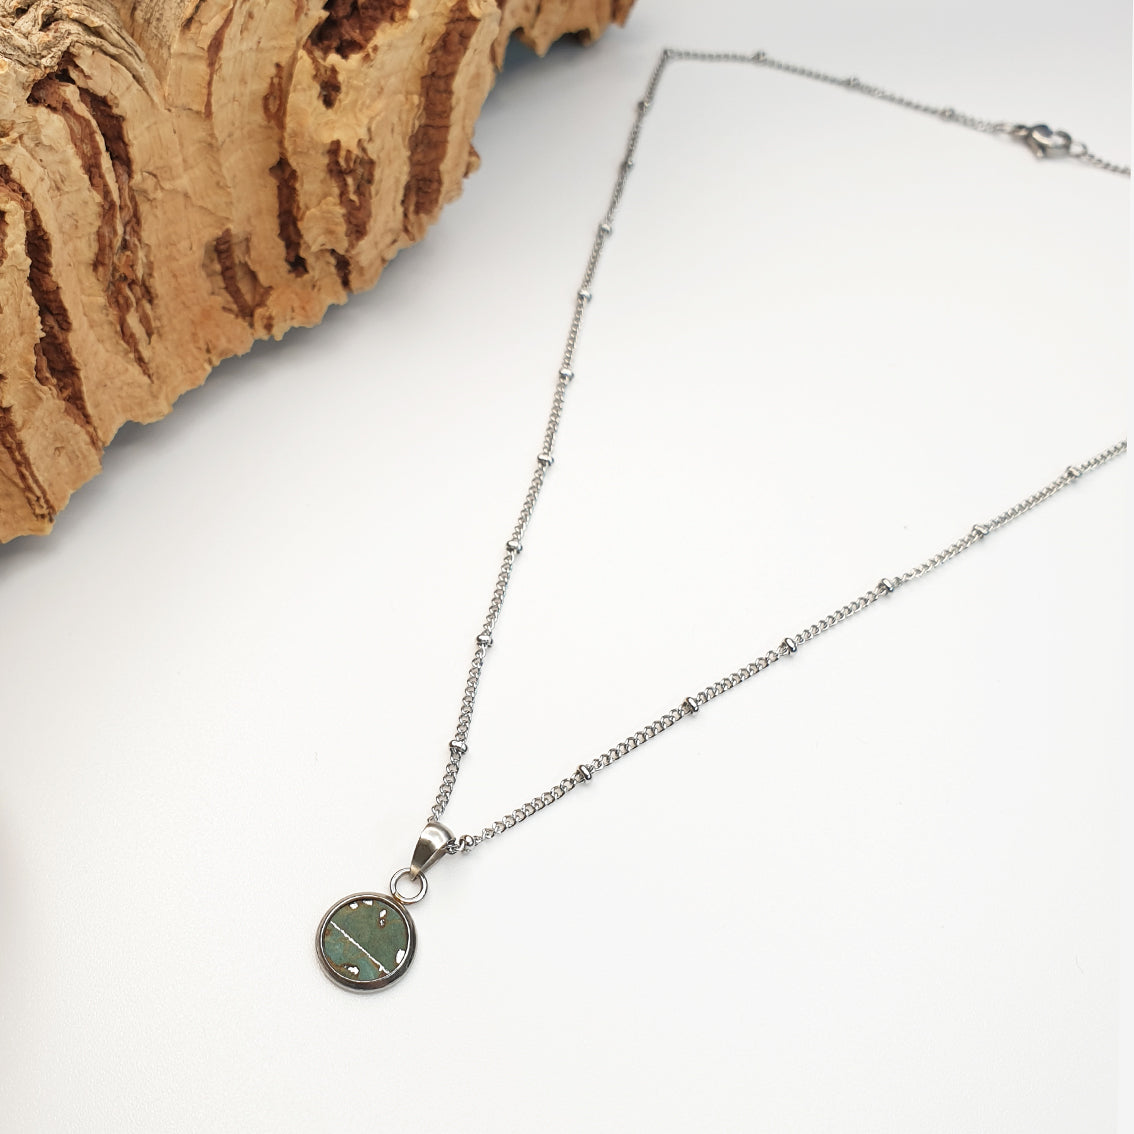 Fabrikk Dwarf Planet Necklace | Aqua Silver | Vegan 'Leather'